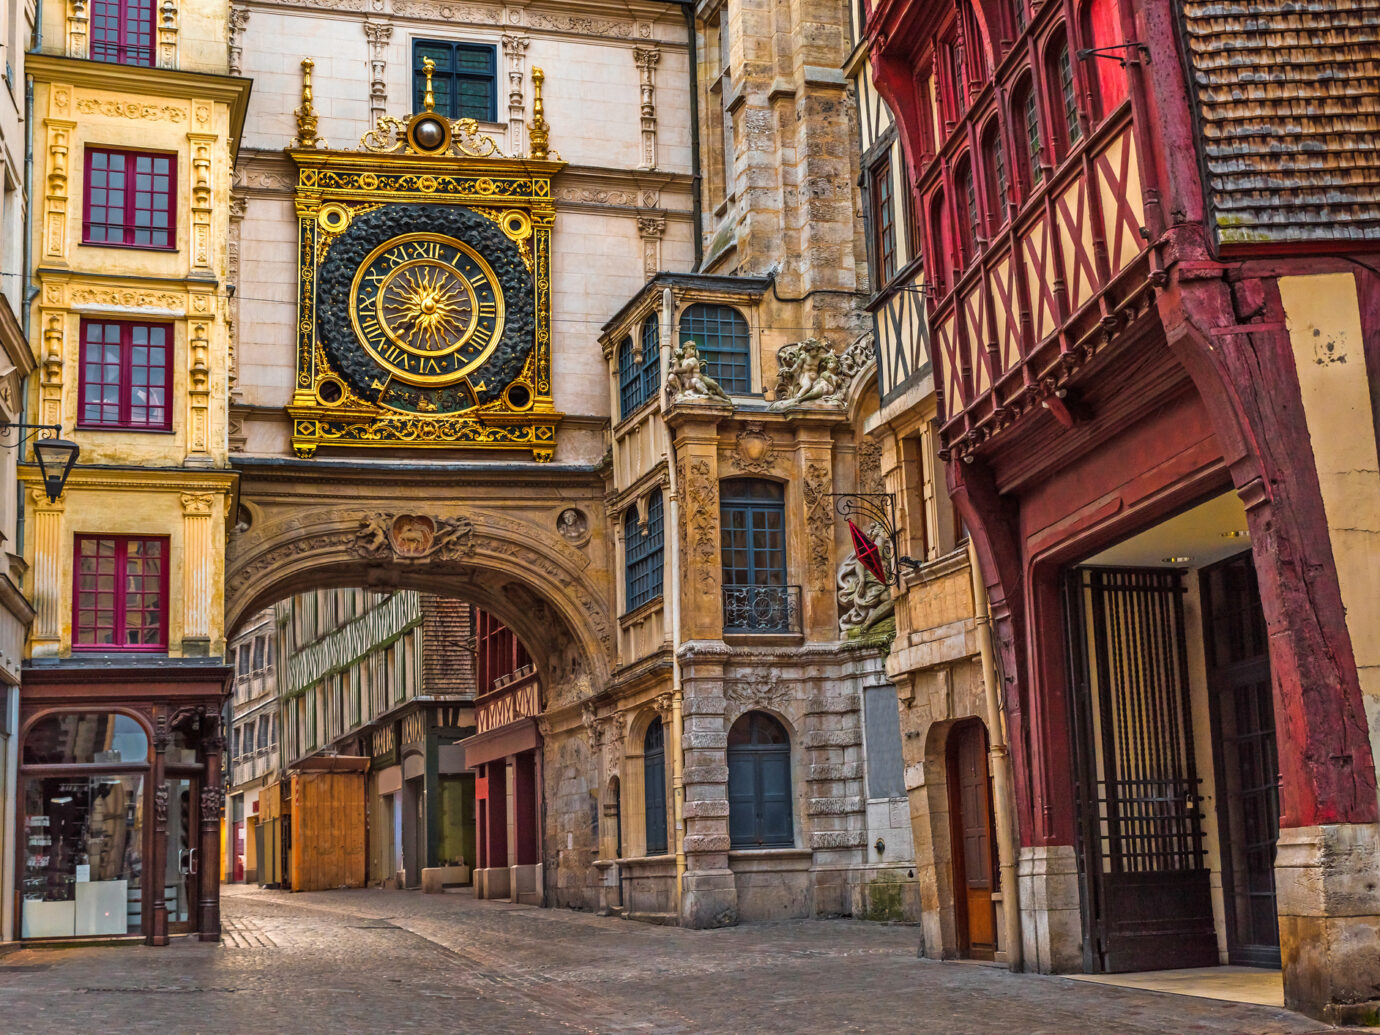 Old cozy street in Rouen with famos Great clocks or Gros Horloge of Rouen, Normandy, France with nobody